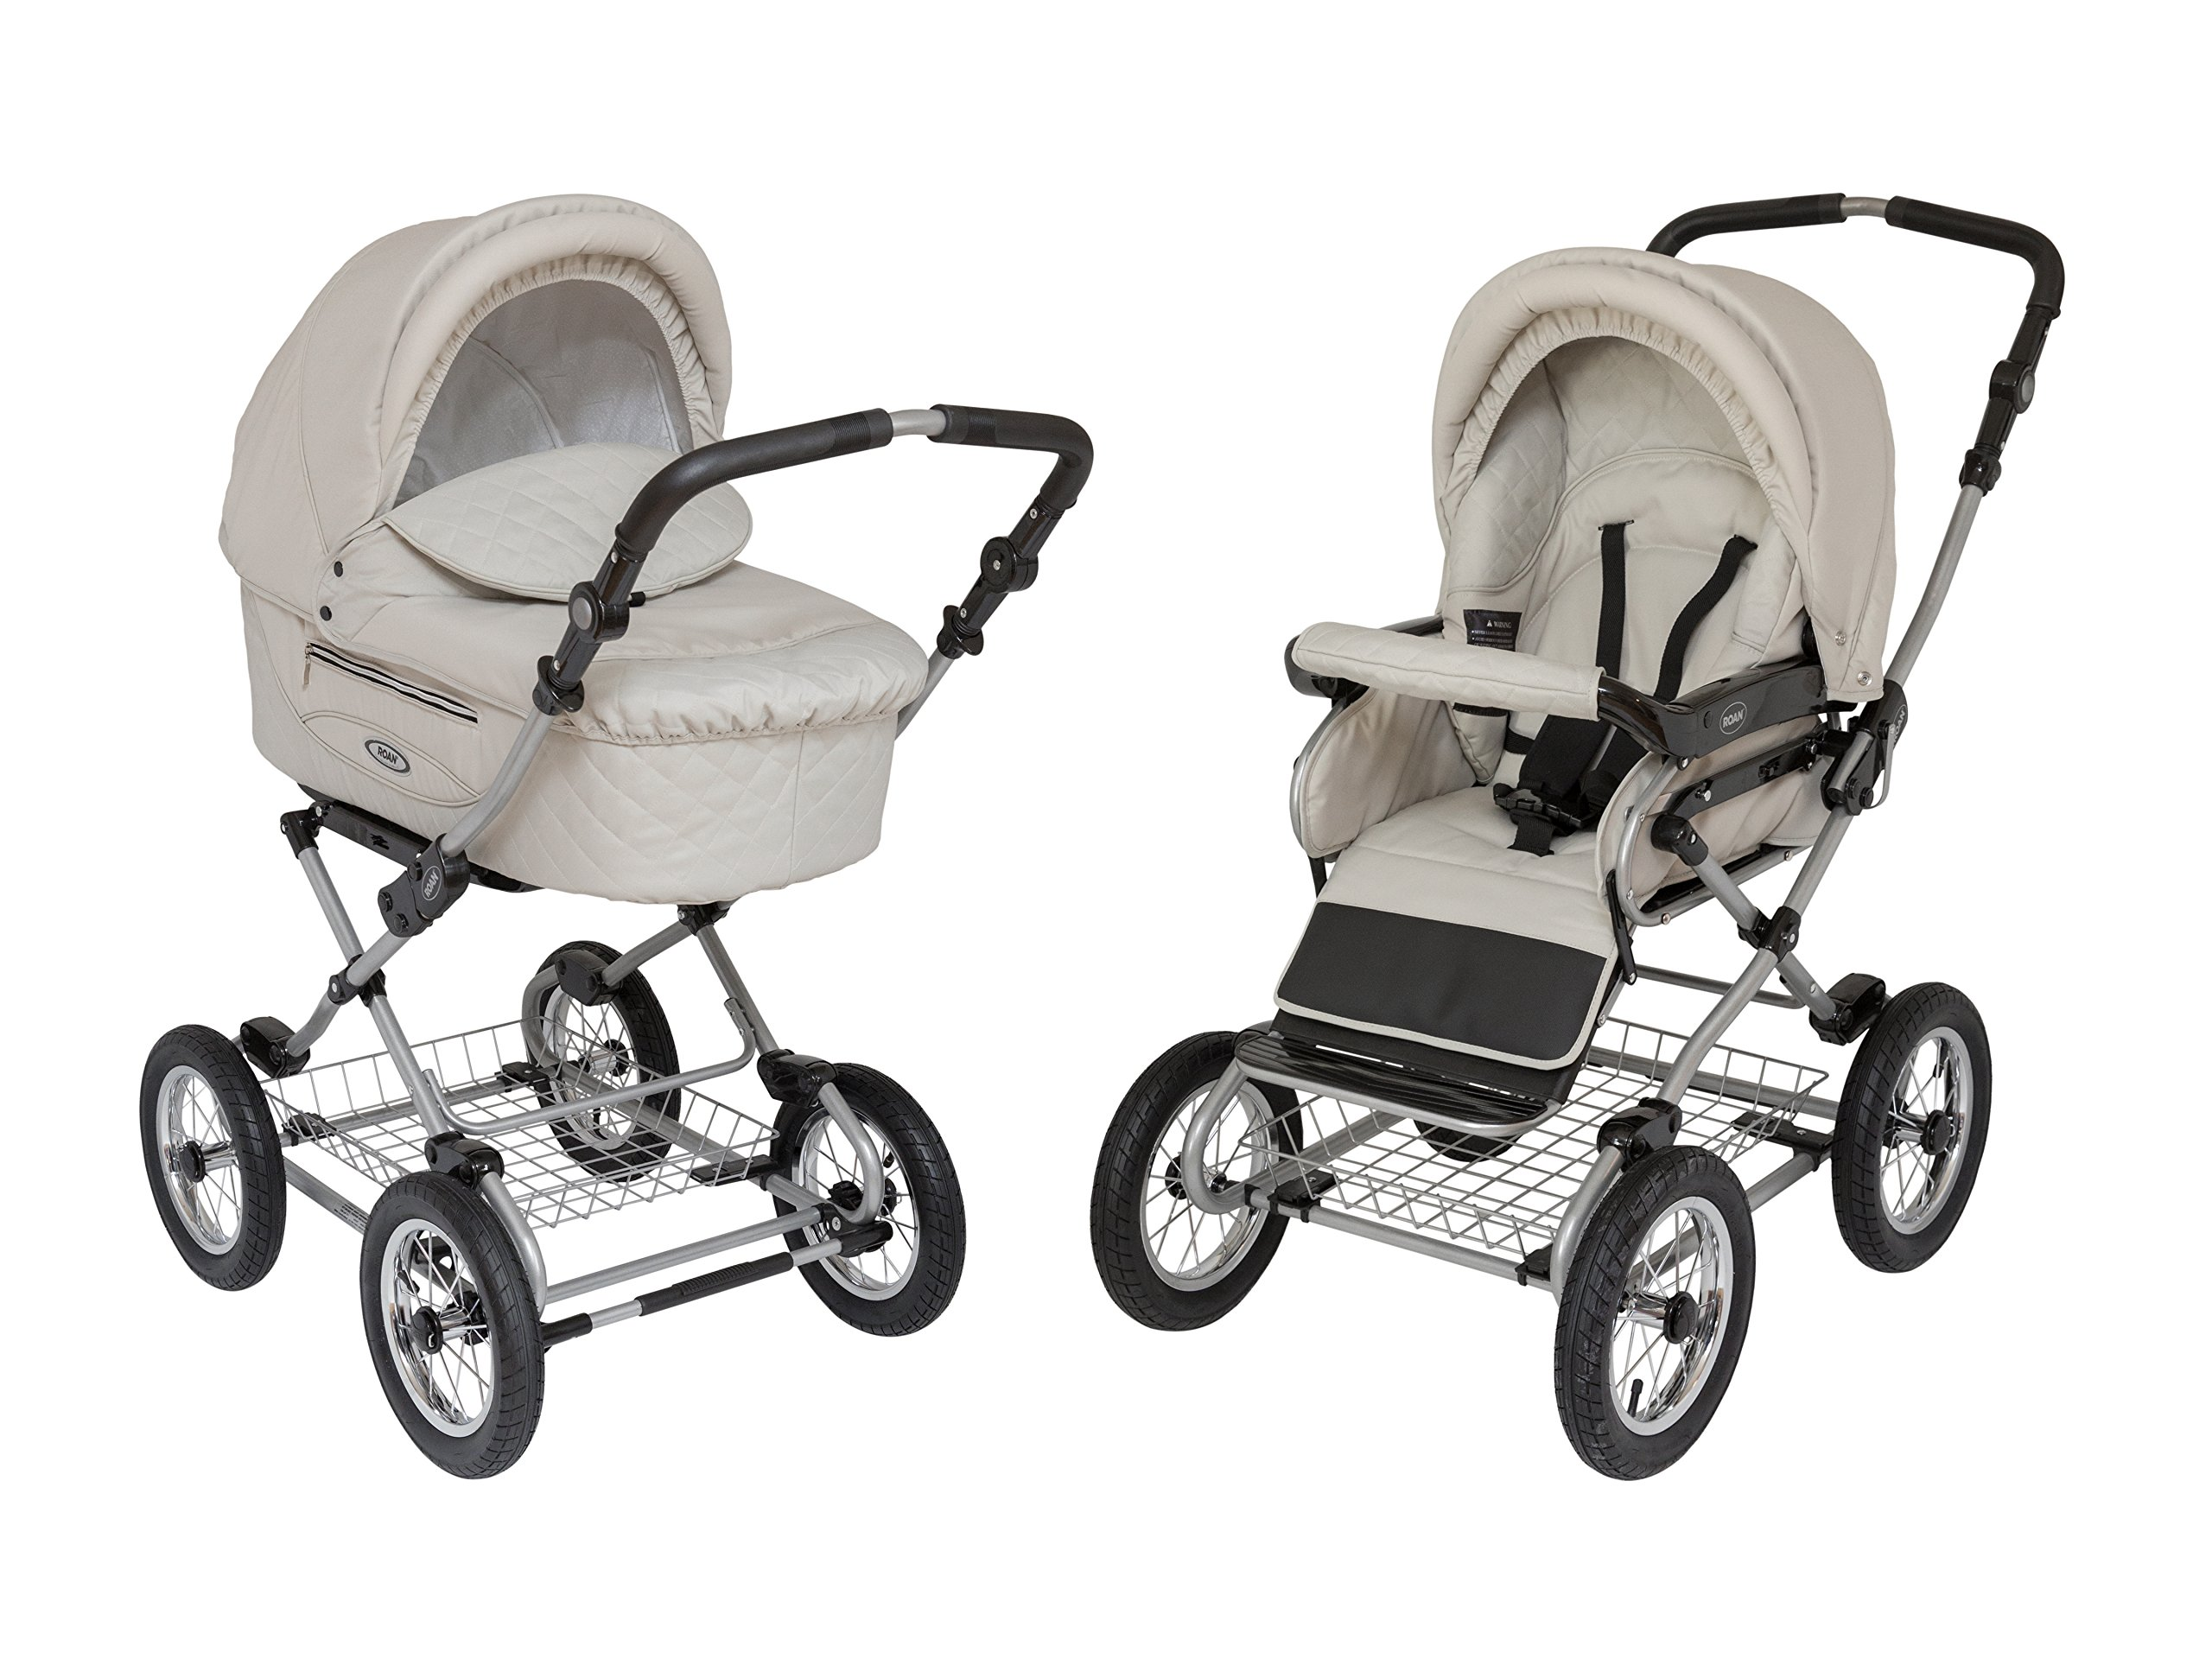 Roan Kortina Classic 2-in-1 Pram Stroller with Bassinet for Newborn Baby and Toddler Reclining Seat with Five Point Safety System UV Proof Canopy and Stainless Steel Storage Basket (Natural Tan) by Roan (Image #1)